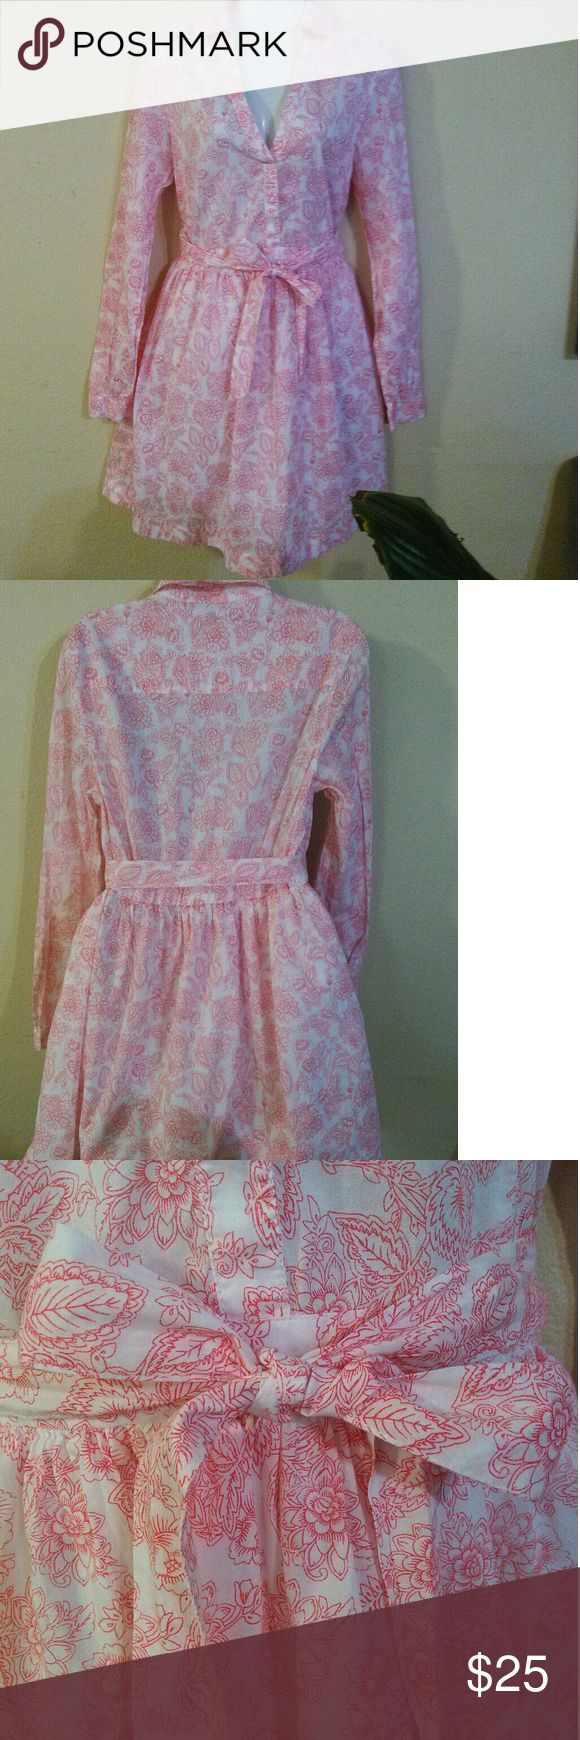 Victoria's Secret white and red/pink dress Cute Victoria's secret dress size 8 005 Victoria's Secret Dresses Long Sleeve